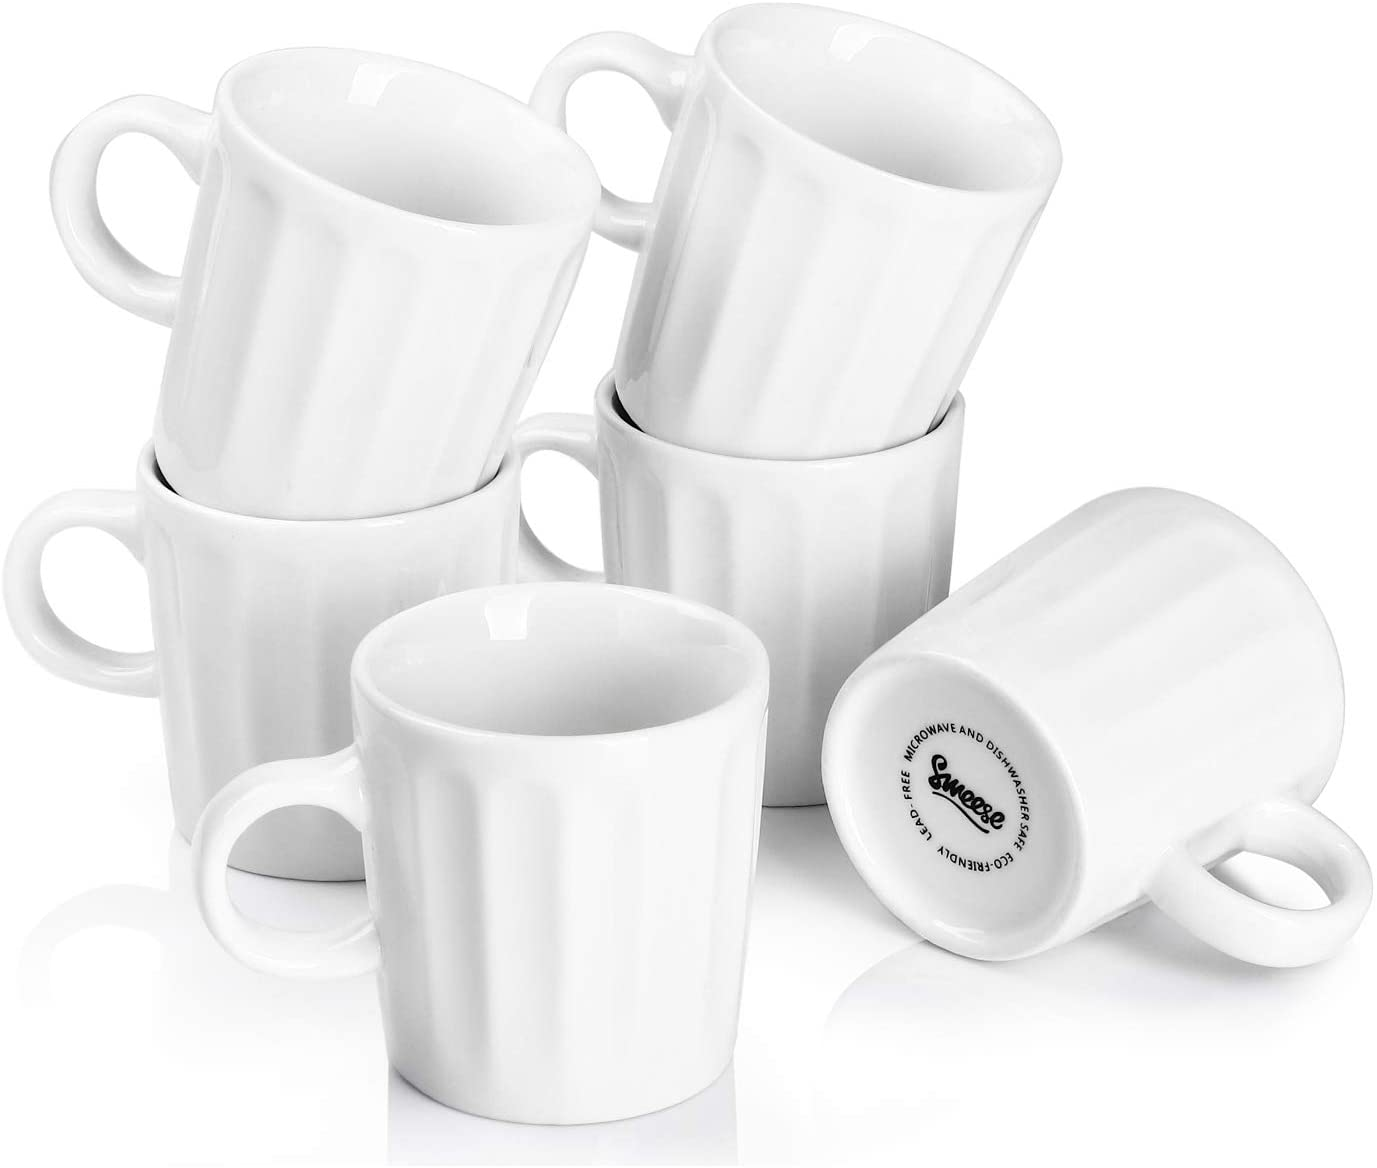 Sweese 410.002 Porcelain Fluted Espresso Cups - 3.5 Ounce - Set of 6, White